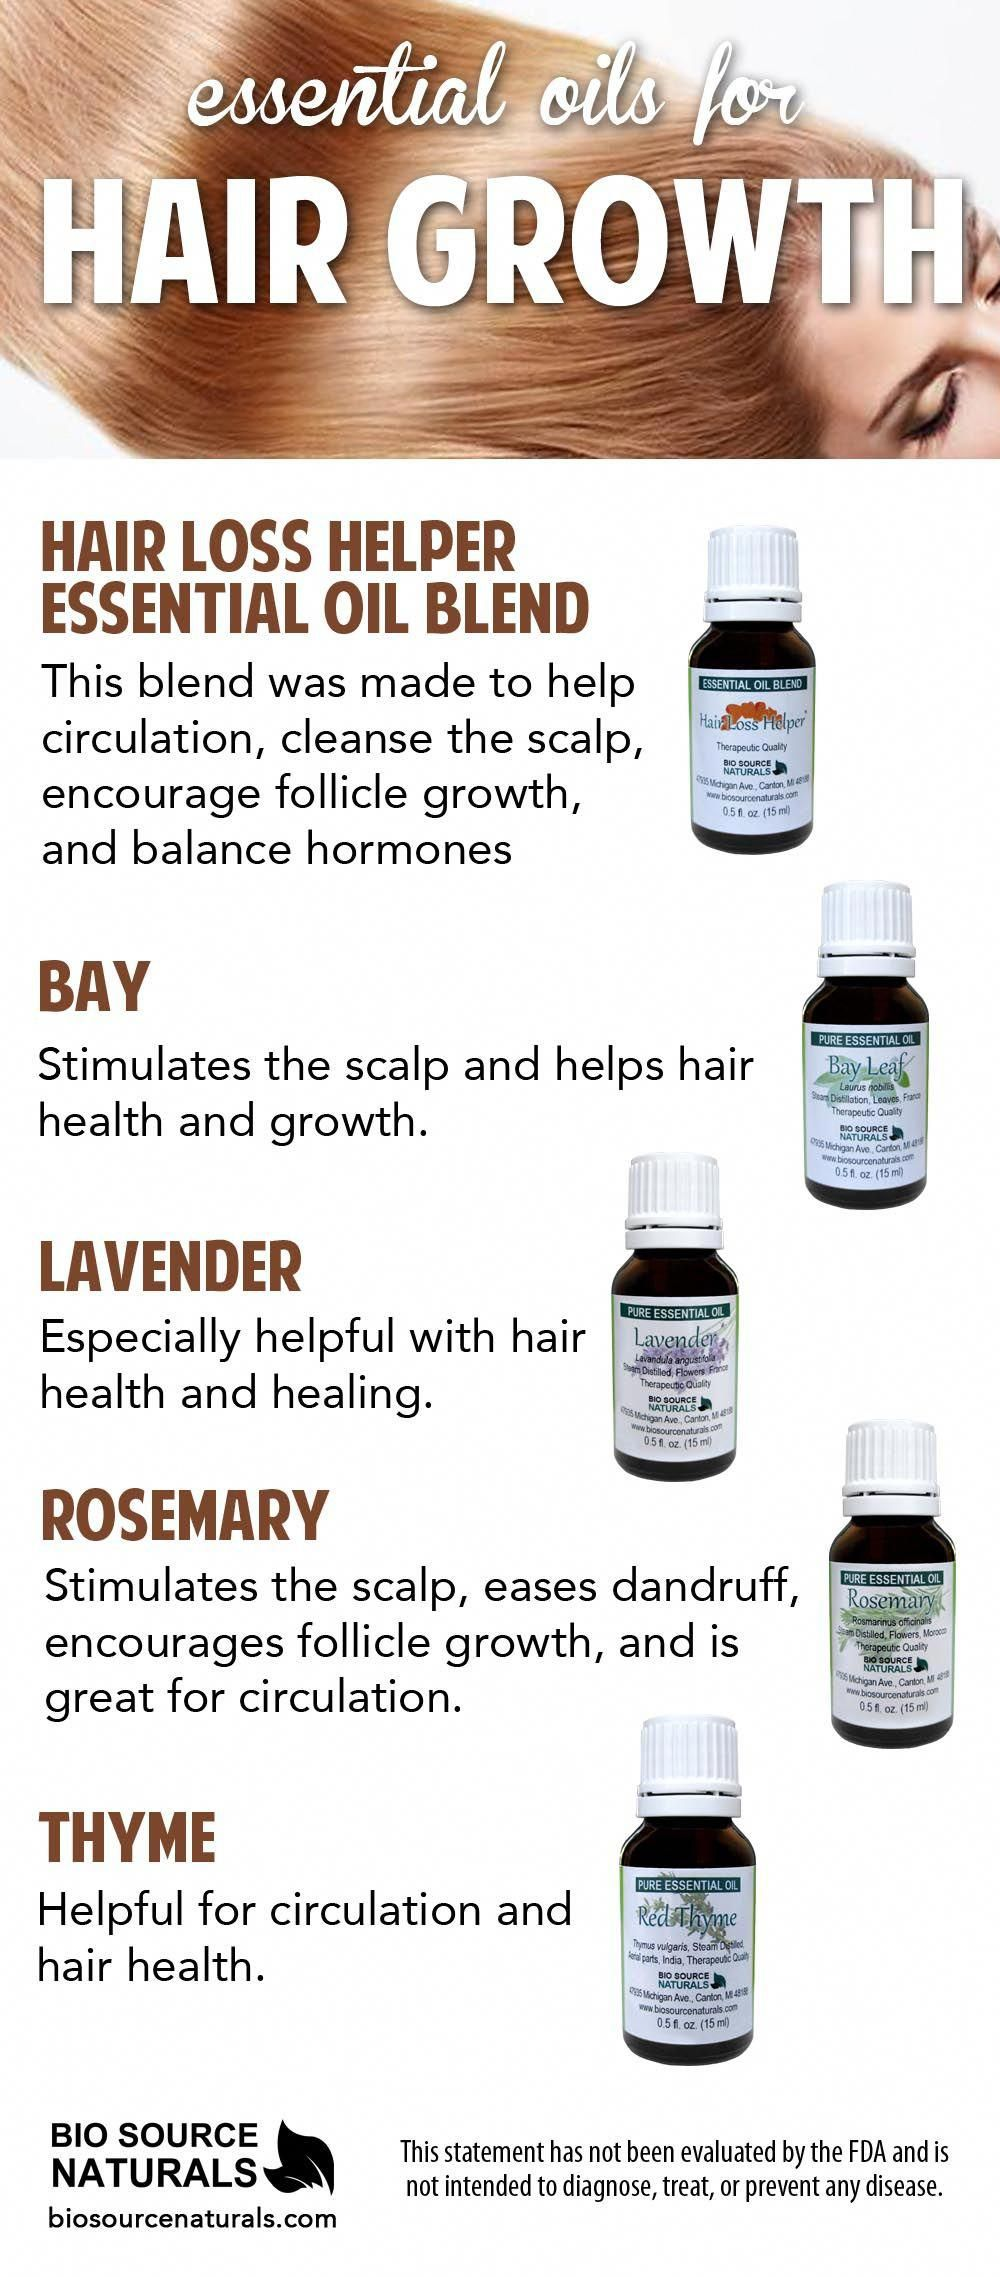 Essential oils can be used for hair loss as they cleanse